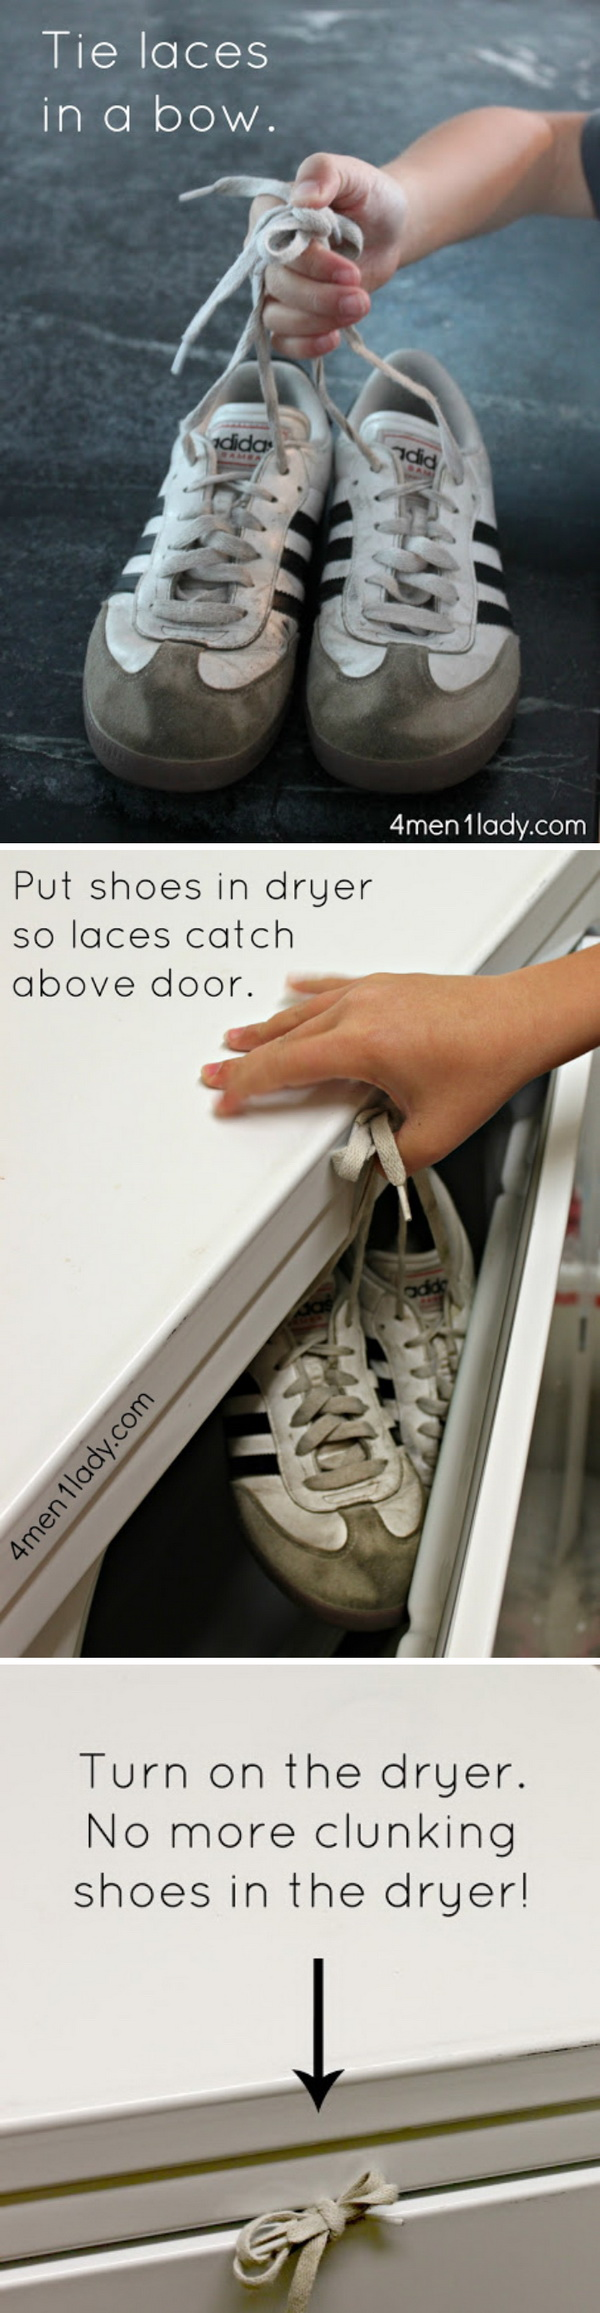 How to Dry Shoes In The Dryer: Wedge knotted laces in the dryer door to prevent the dreaded sneaker bang.